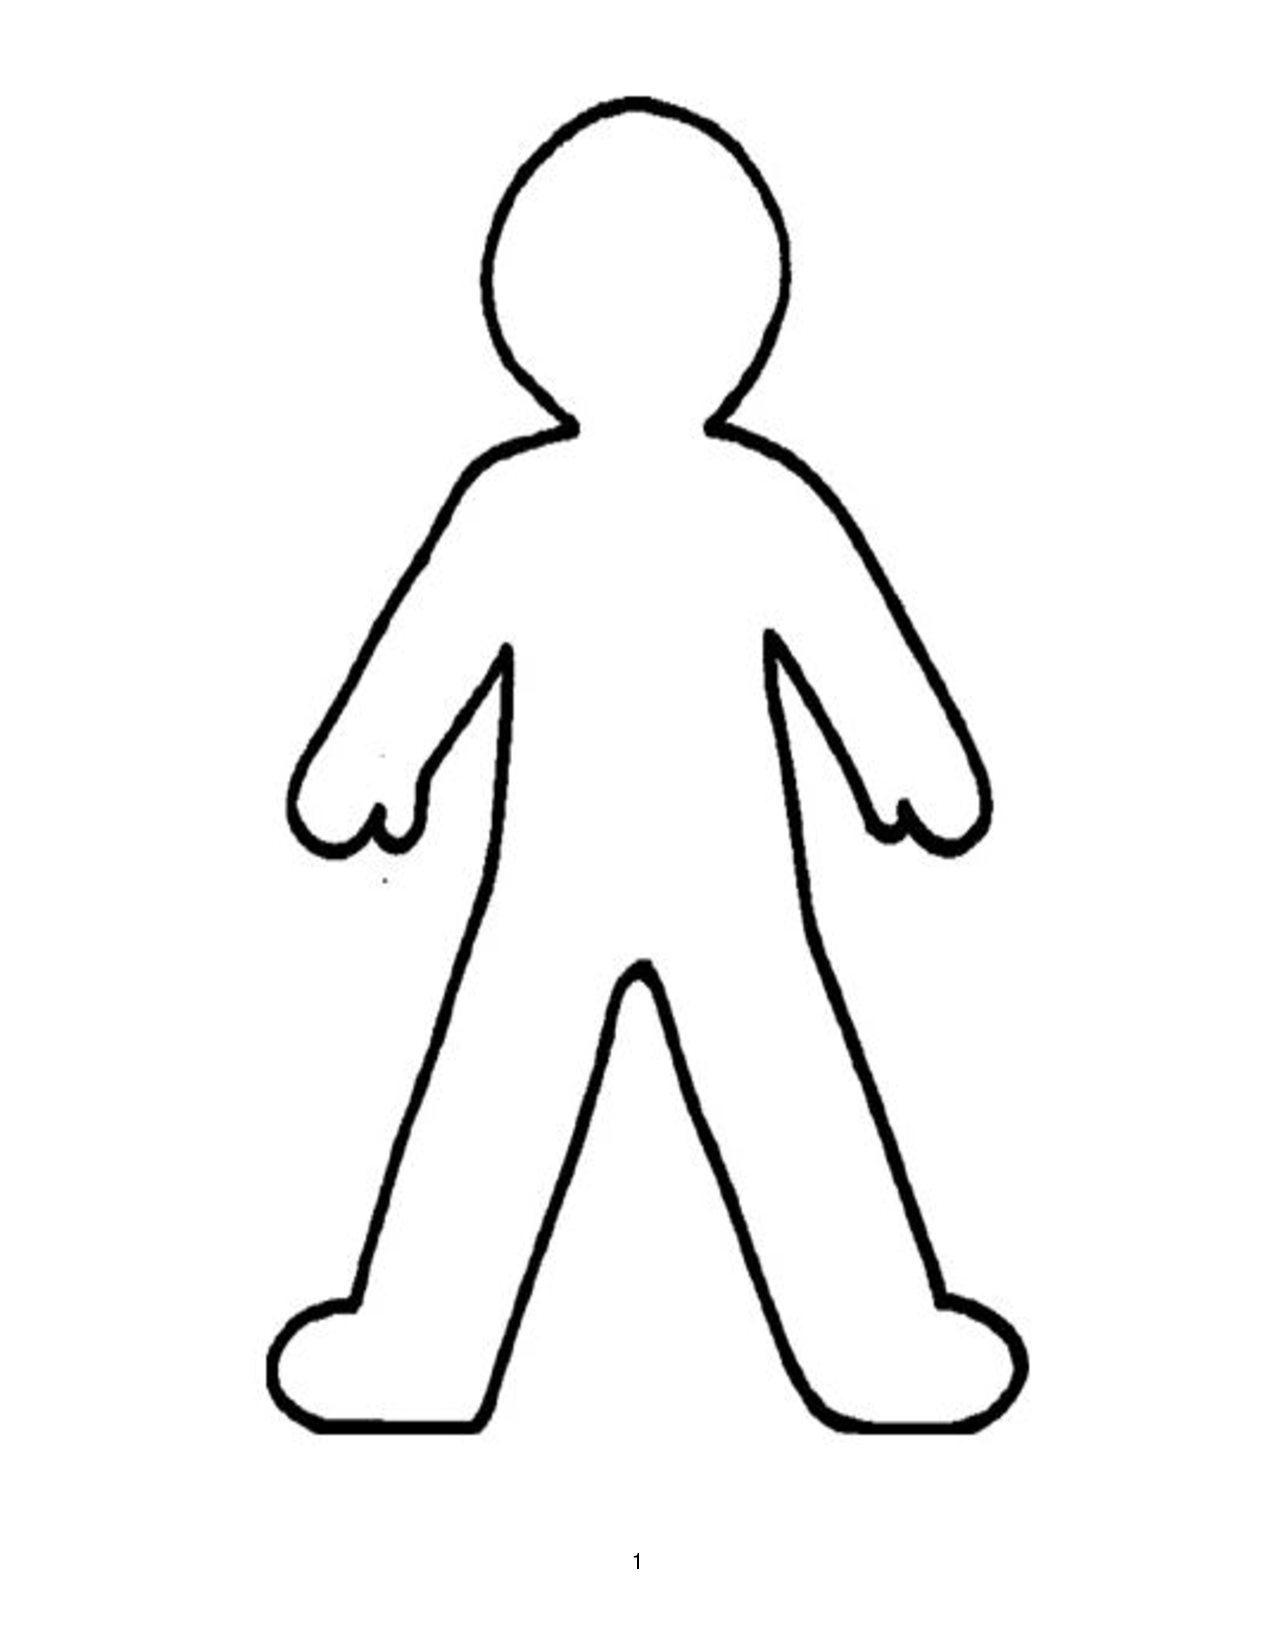 Free Child Outline, Download Free Clip Art, Free Clip Art on.